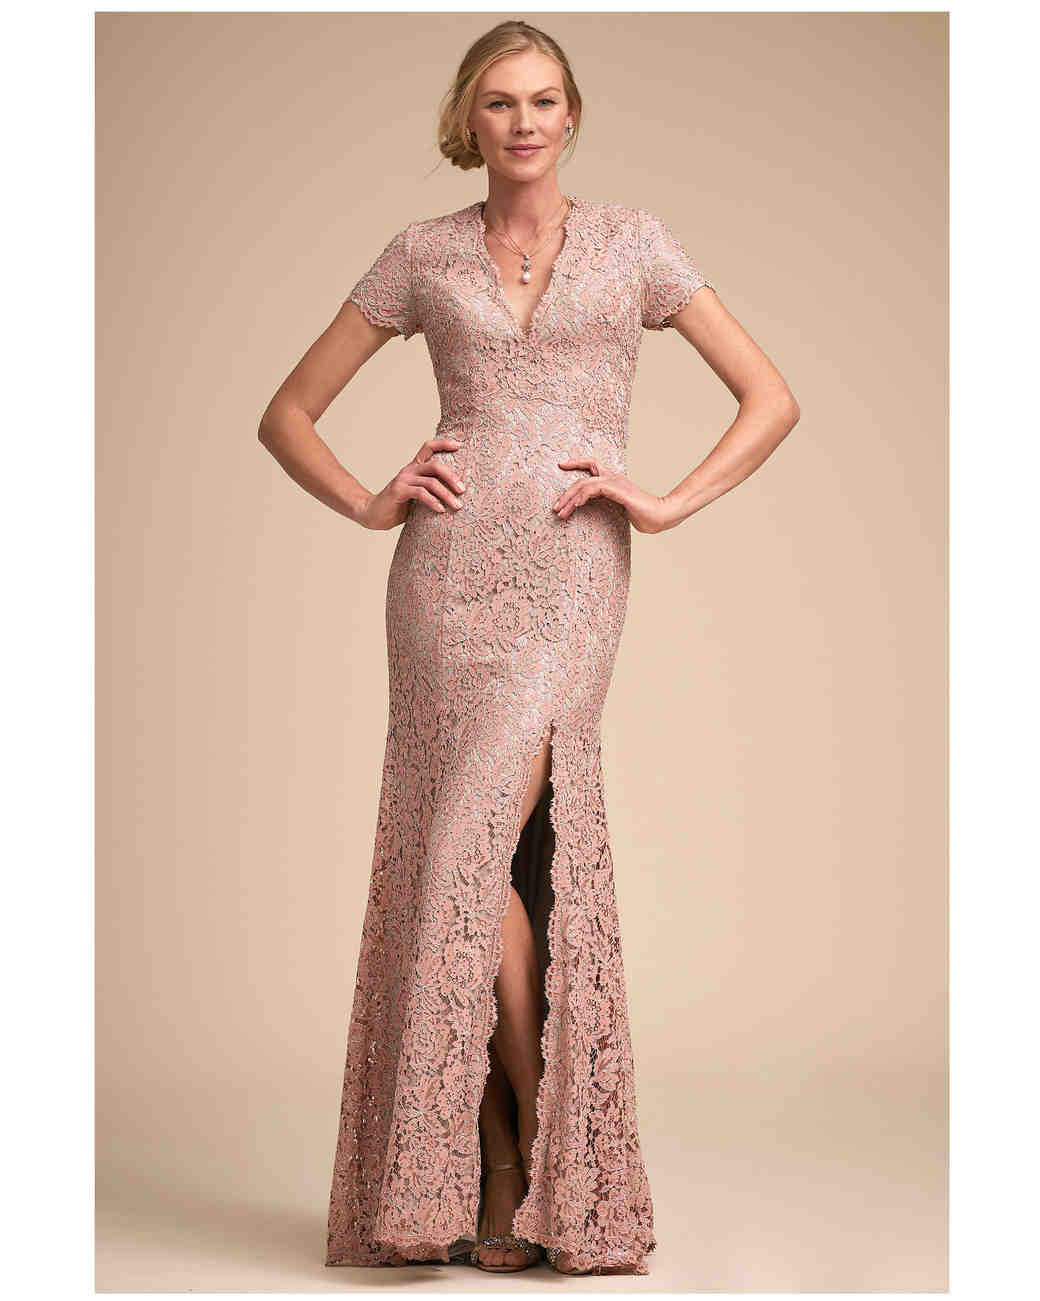 cc01a8c0c9 The Prettiest Pink Mother-of-the-Bride and-Groom Dresses